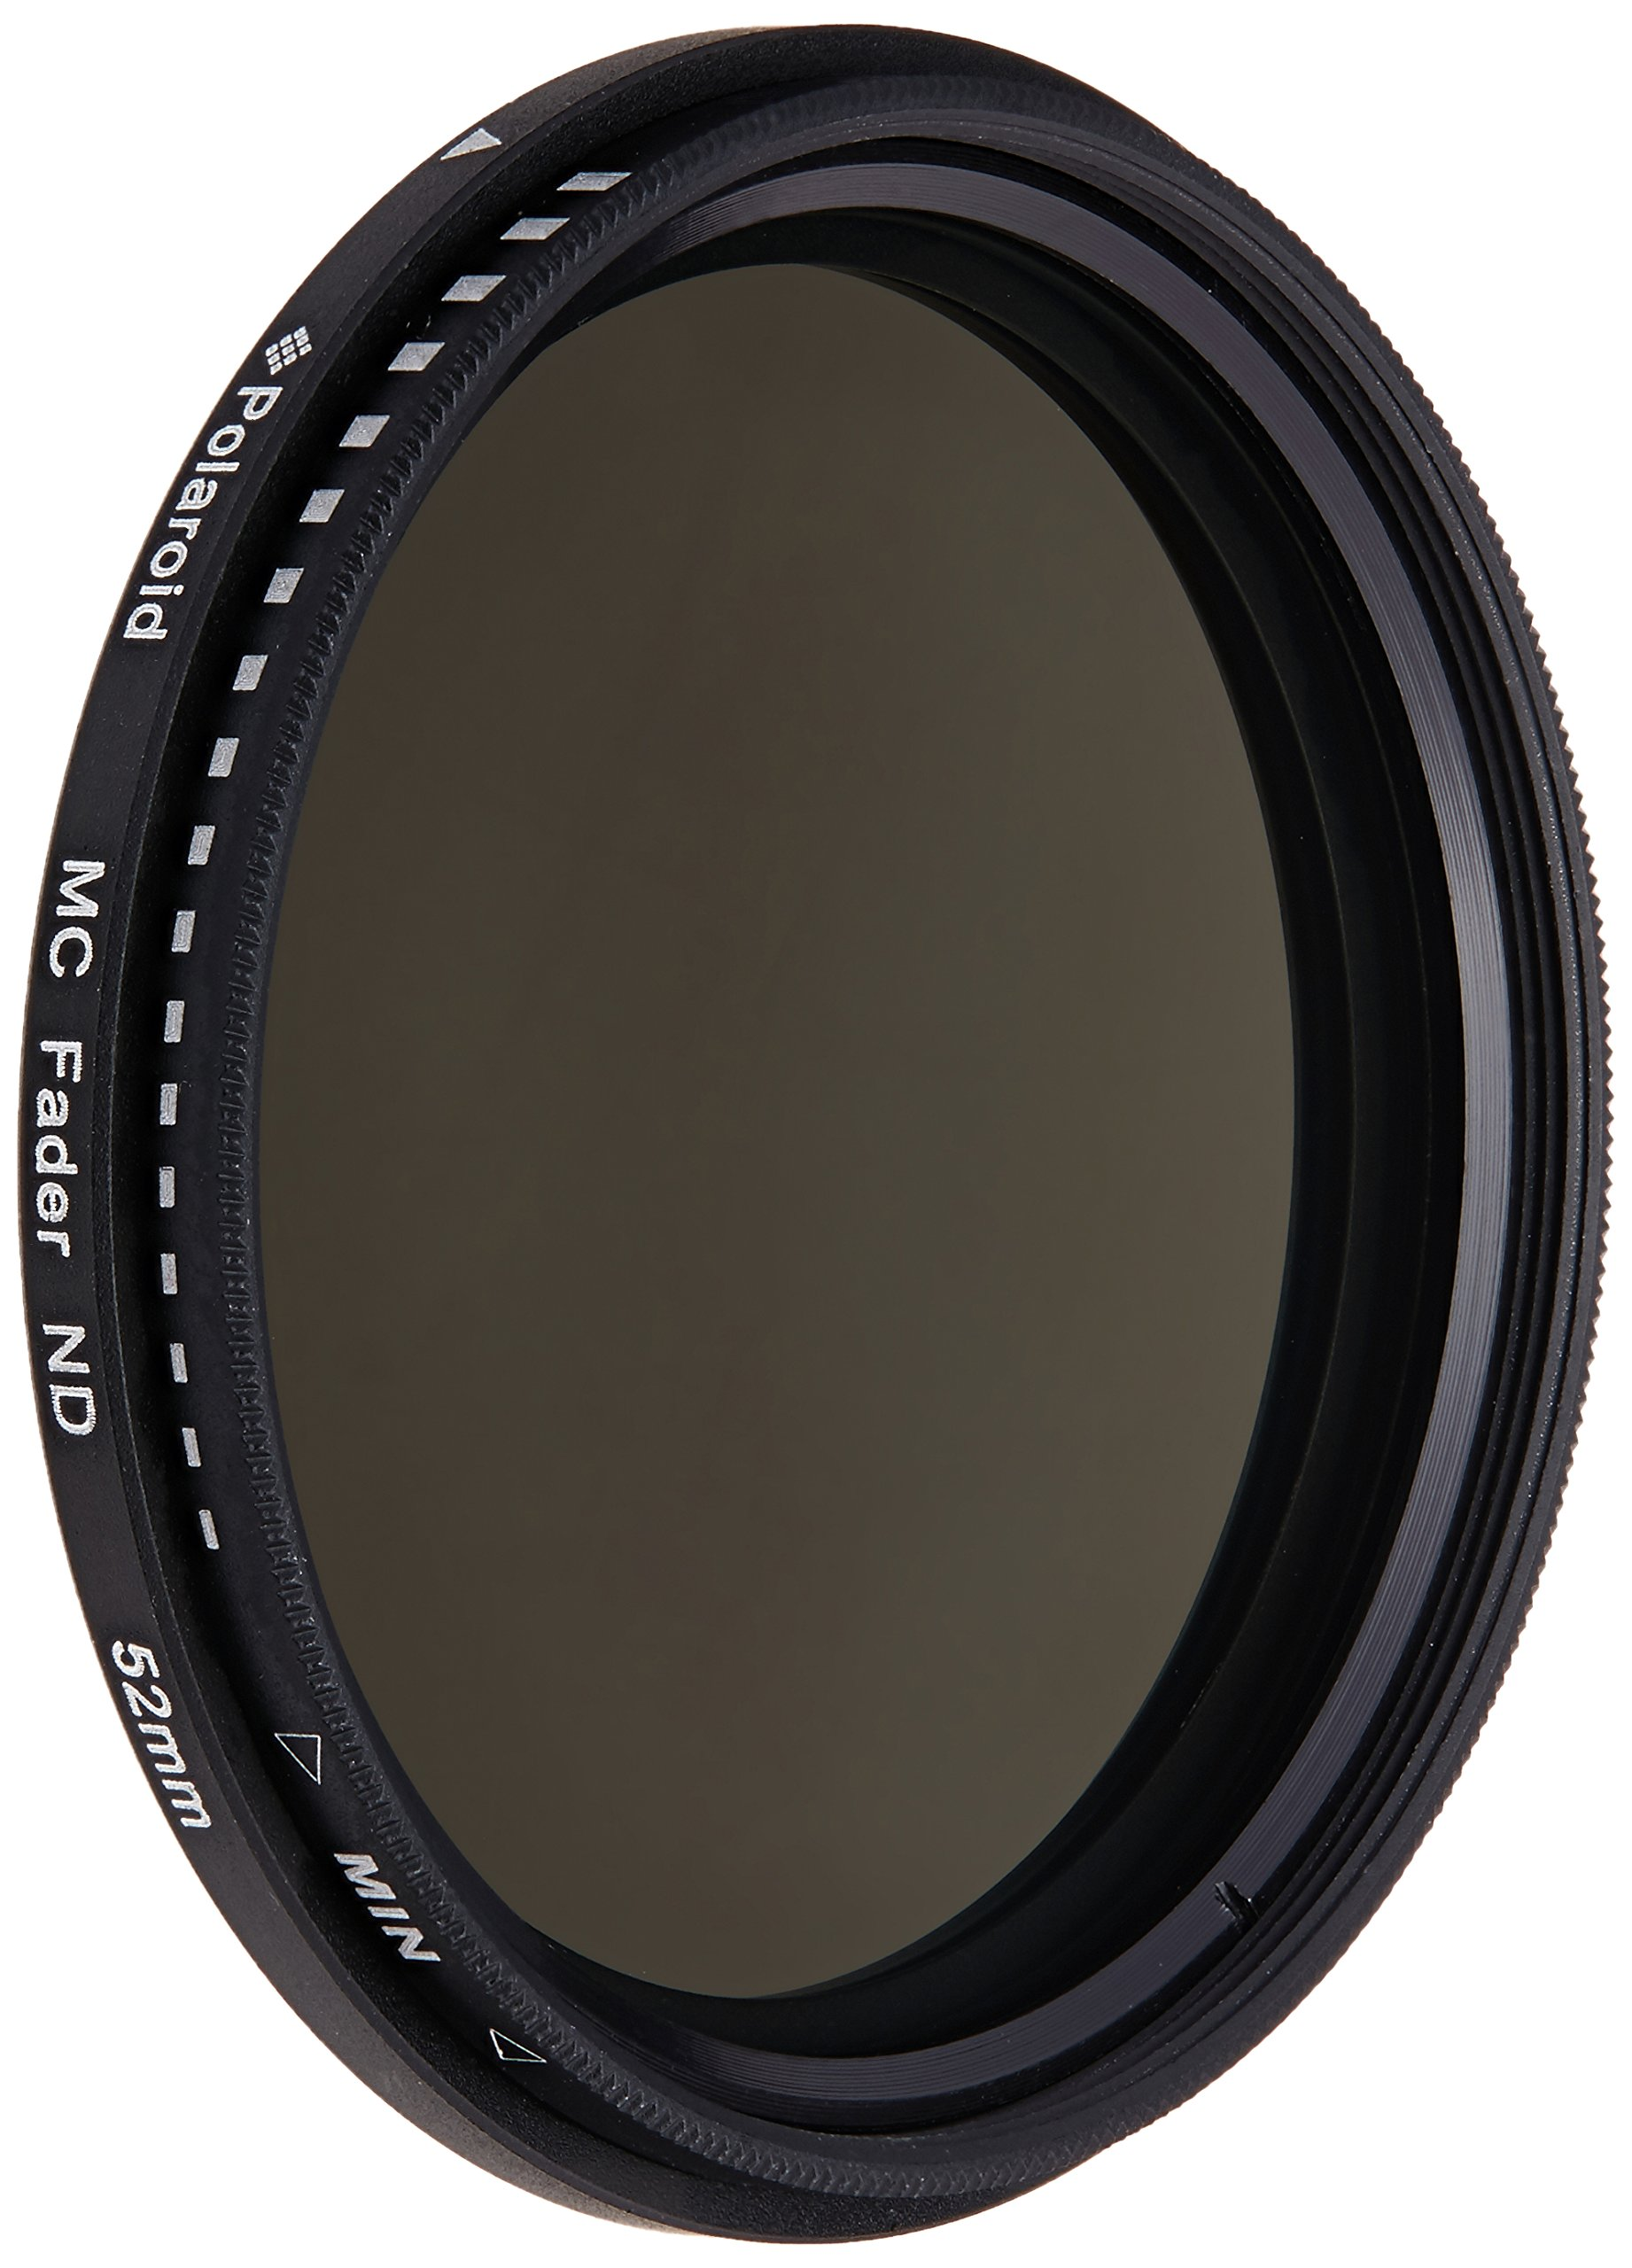 Polaroid Optics 52mm HD Multi-Coated Variable Range (ND3, ND6, ND9, ND16, ND32, ND400) Neutral Density (ND) Fader Filter - 6 Filters in 1! by Polaroid